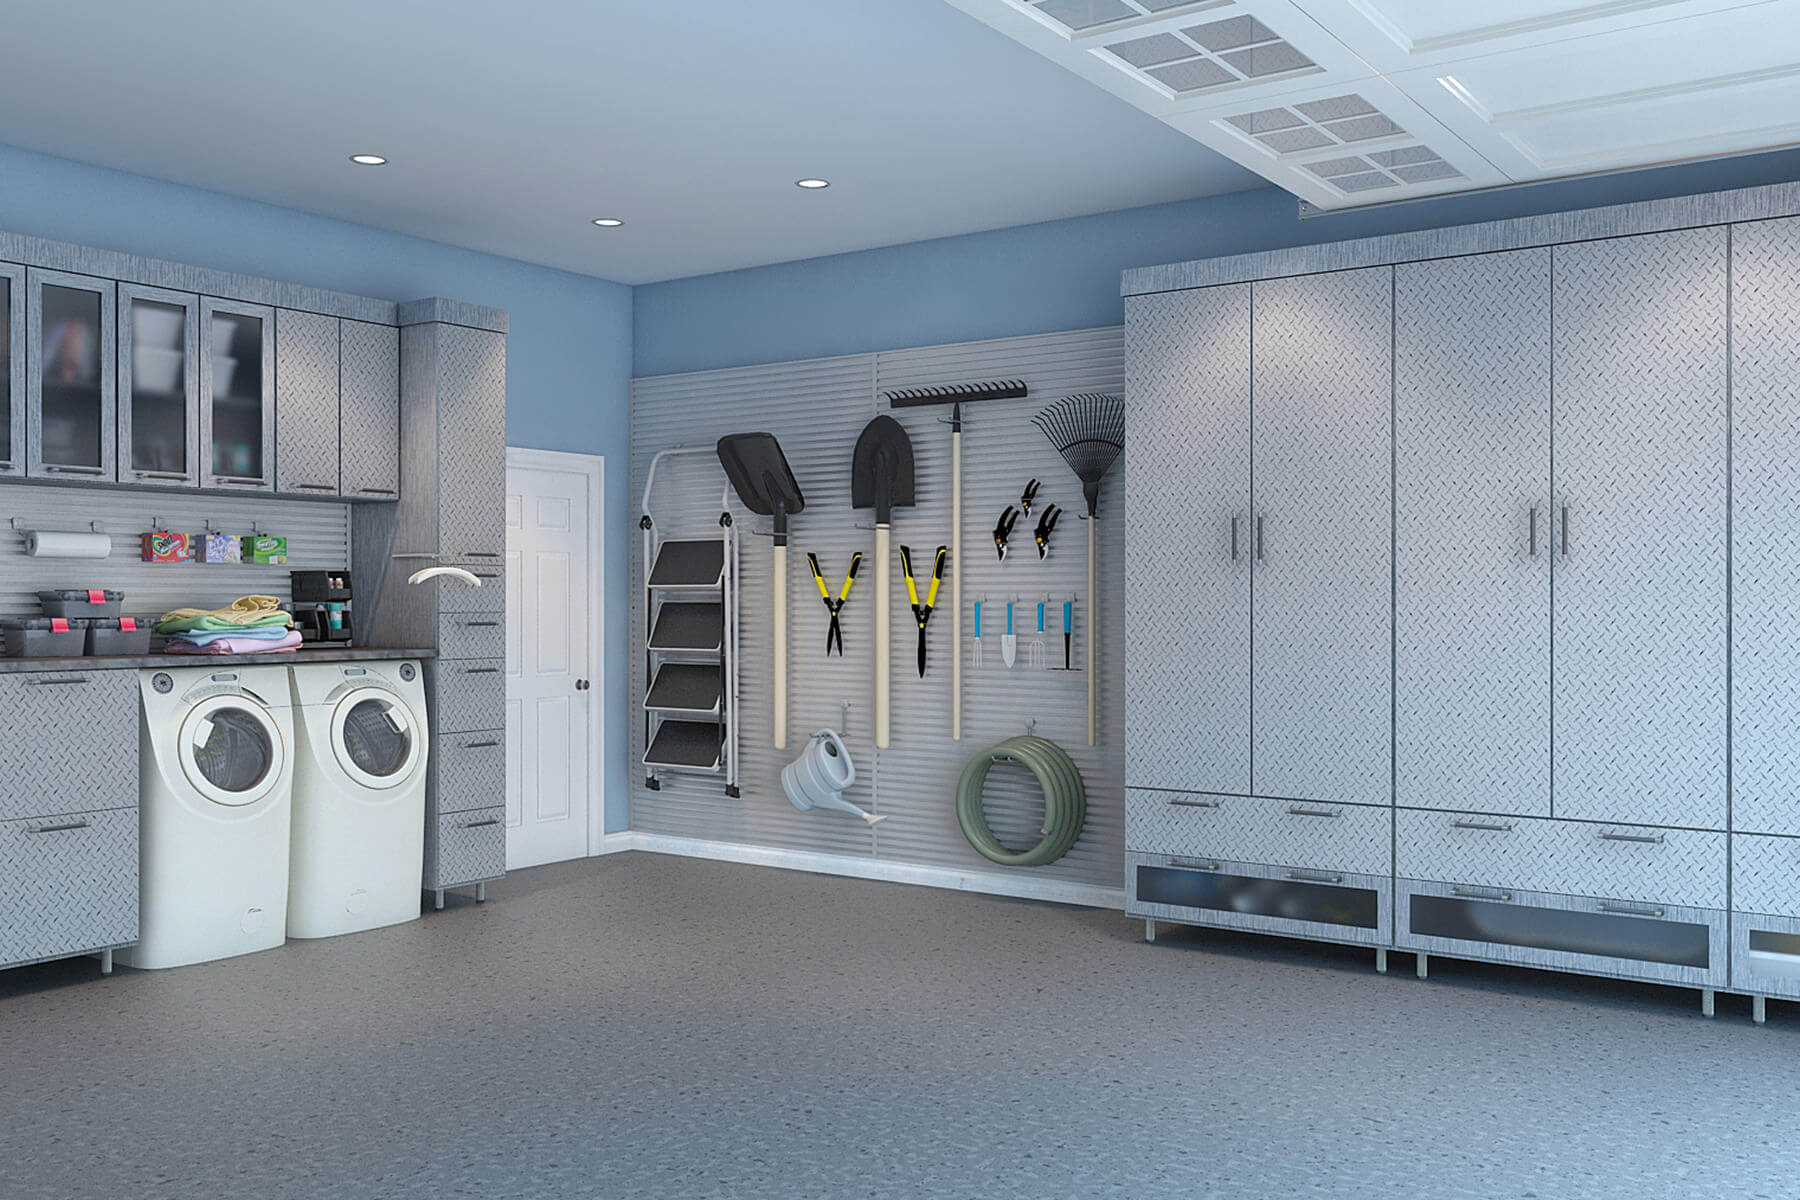 25 Laundry Room Ideas (Photos)